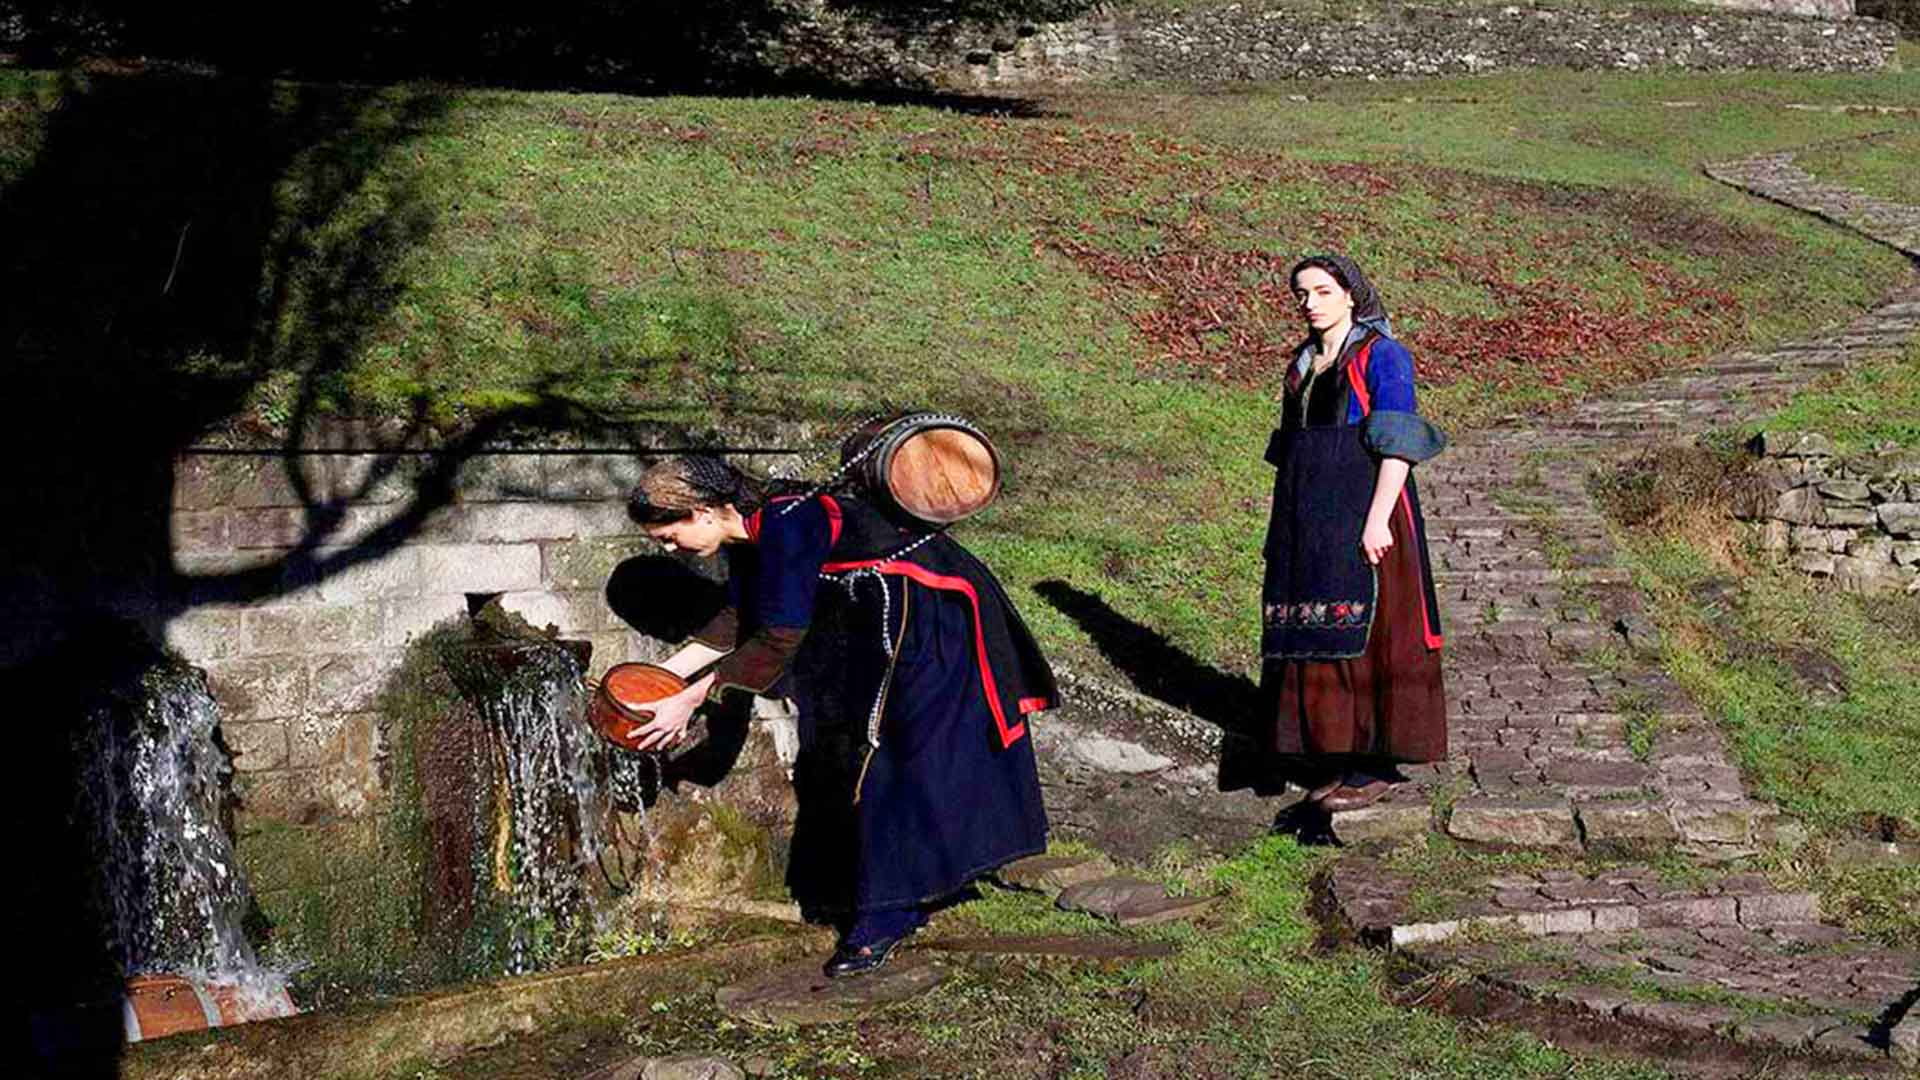 The picturesque fountains of Metsovo